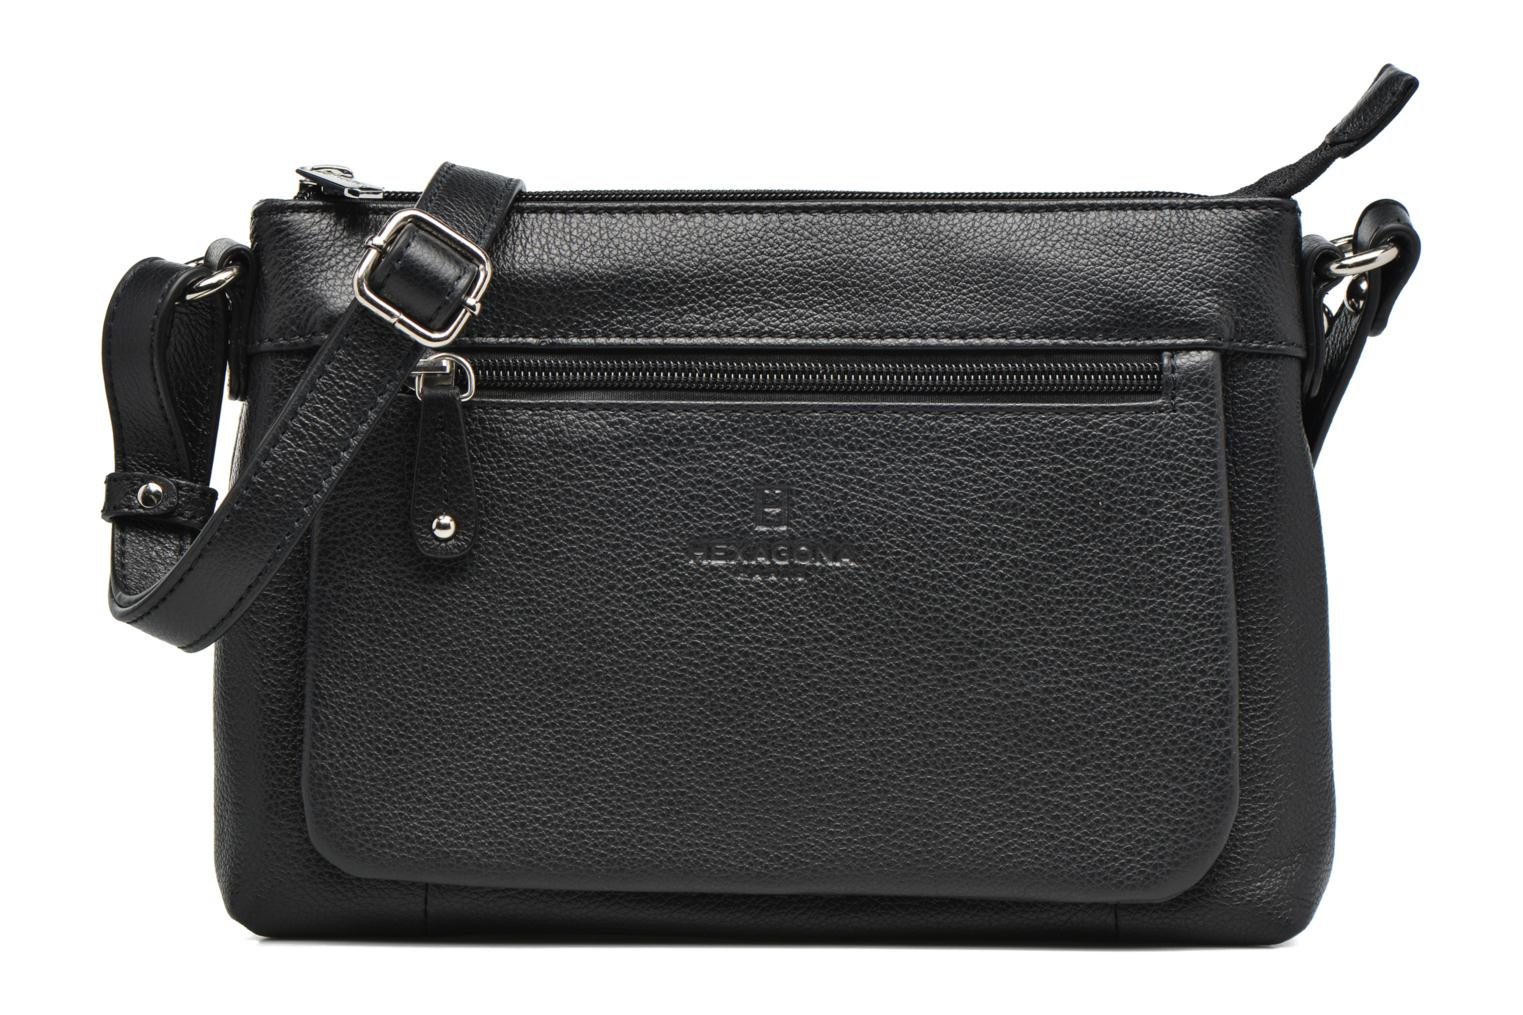 Pretty Pretty Crossbody Cuir Hexagona Hexagona Hexagona Noir Cuir Cuir Hexagona Pretty Crossbody Noir Noir Crossbody 7xFqOntU0w